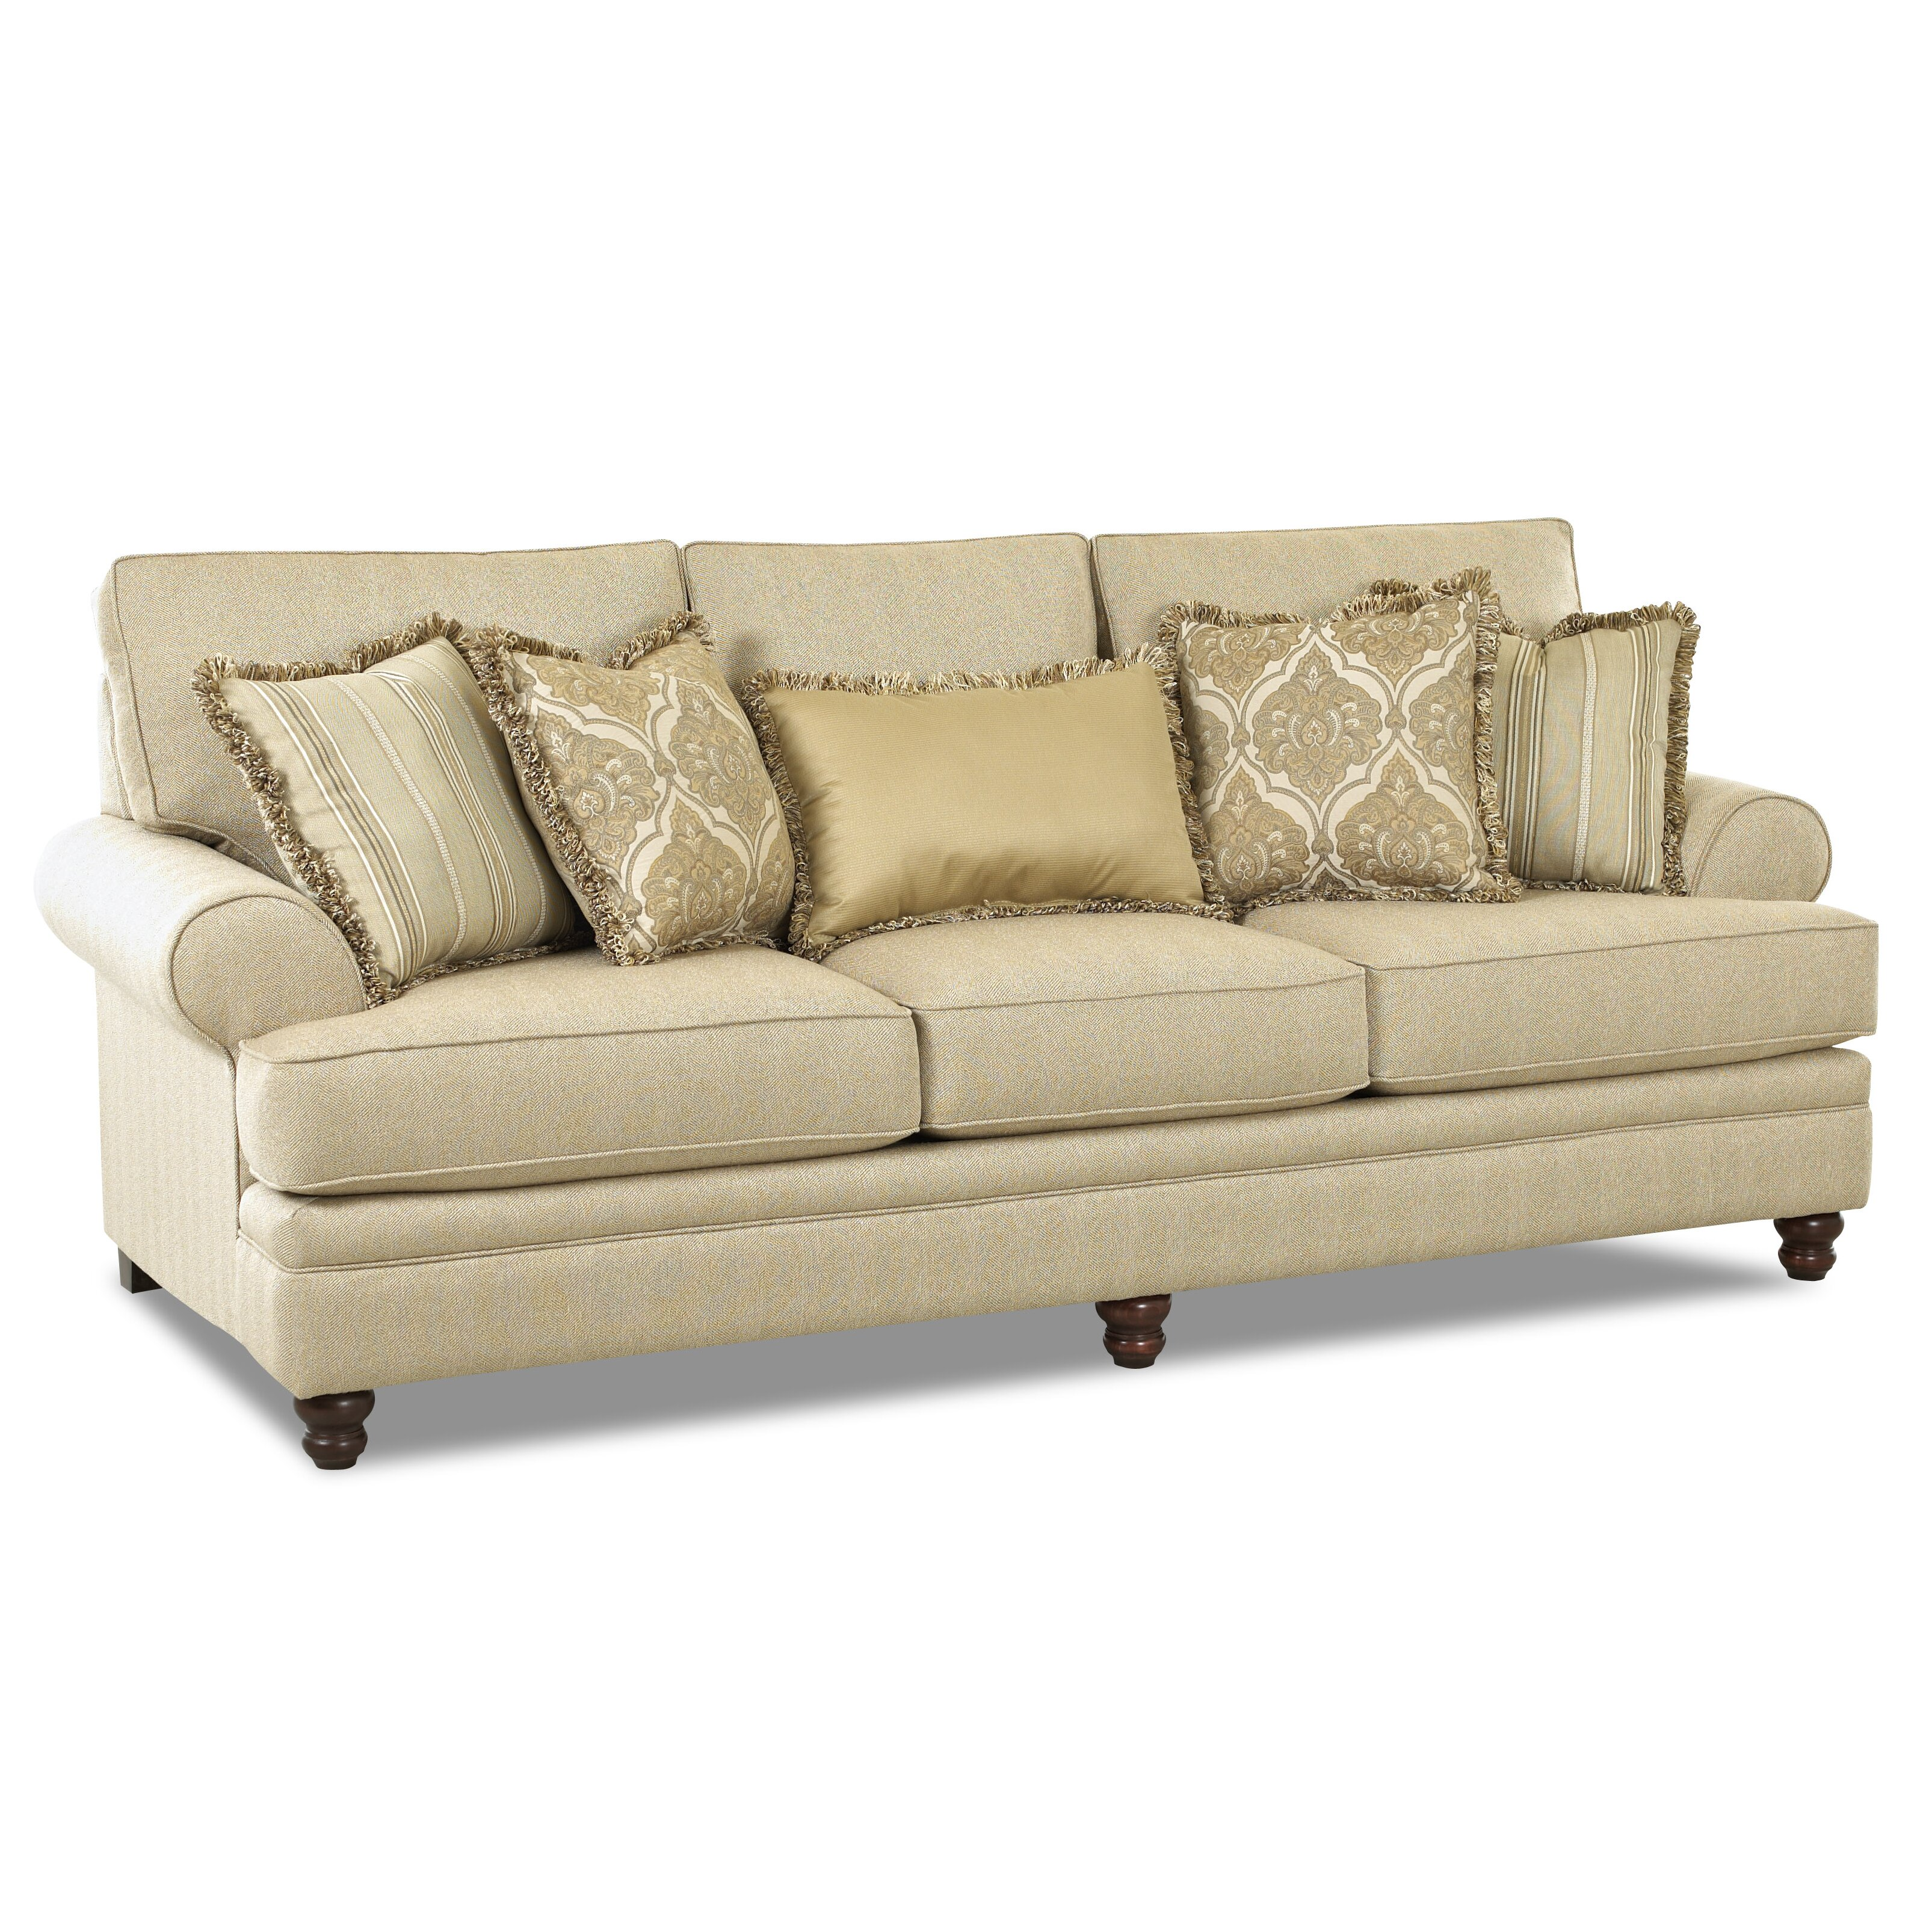 Klaussner Furniture Darcy Sofa & Reviews | Wayfair